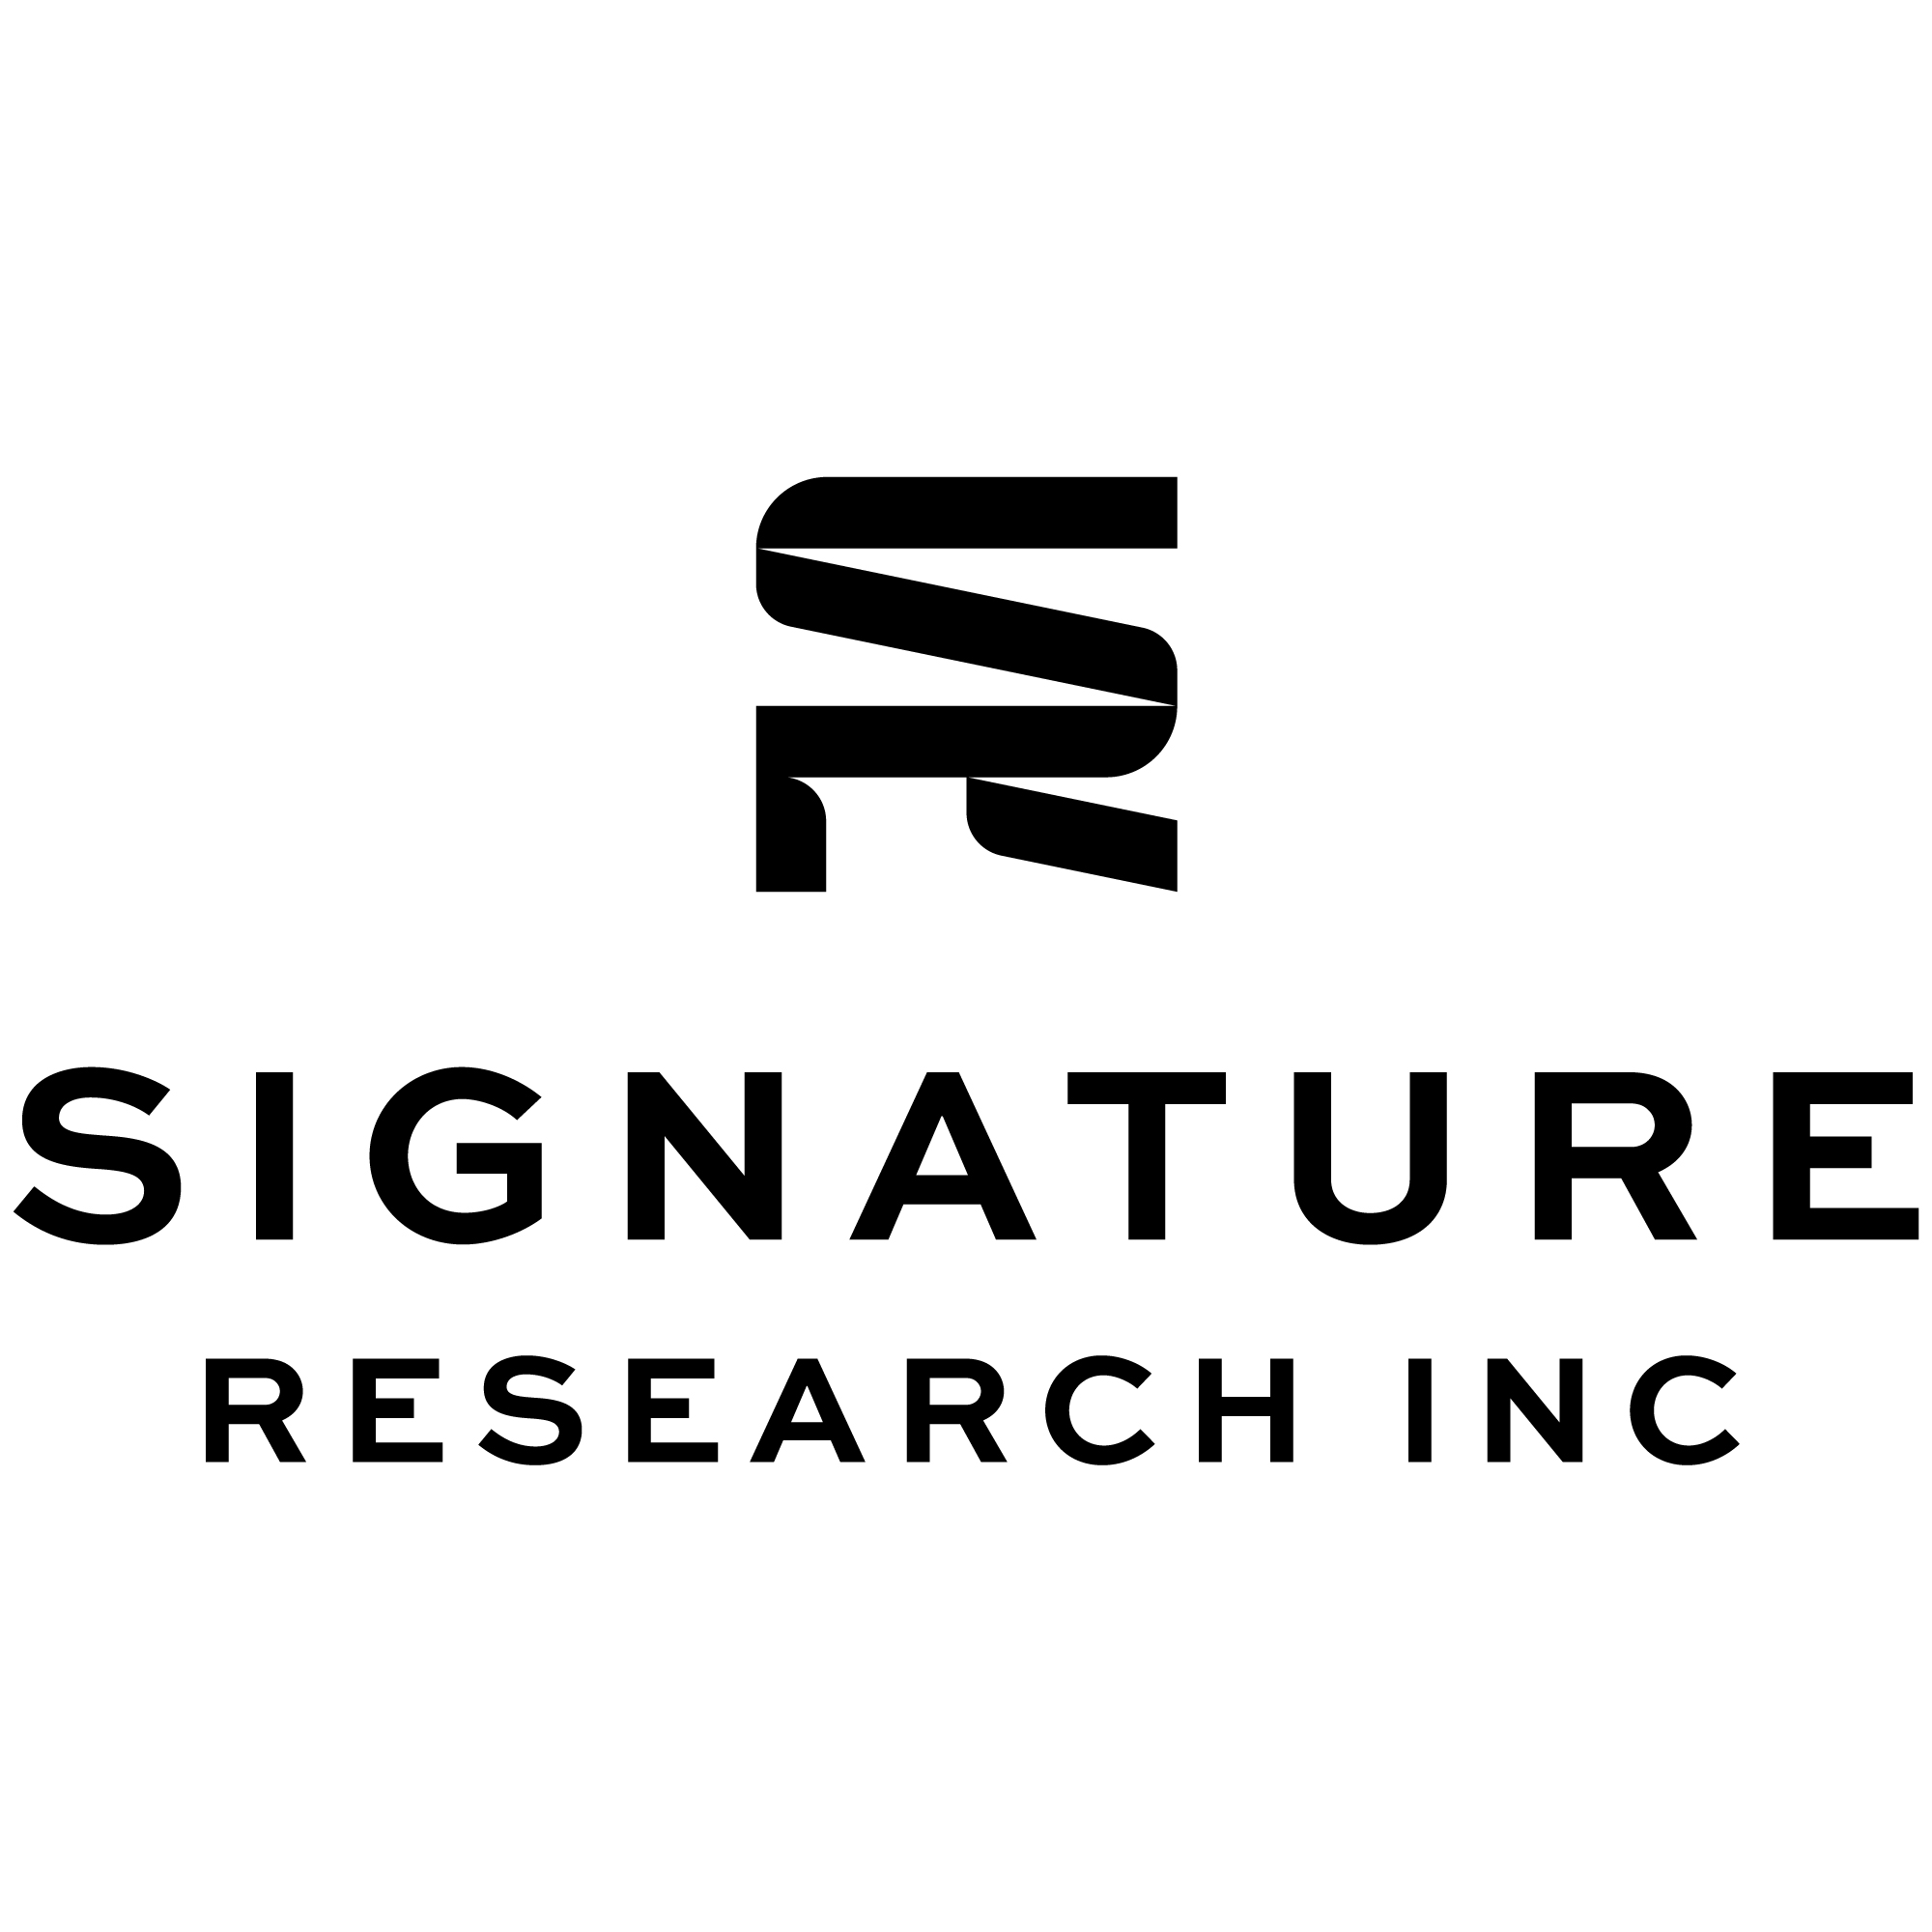 Signature Research, Inc.